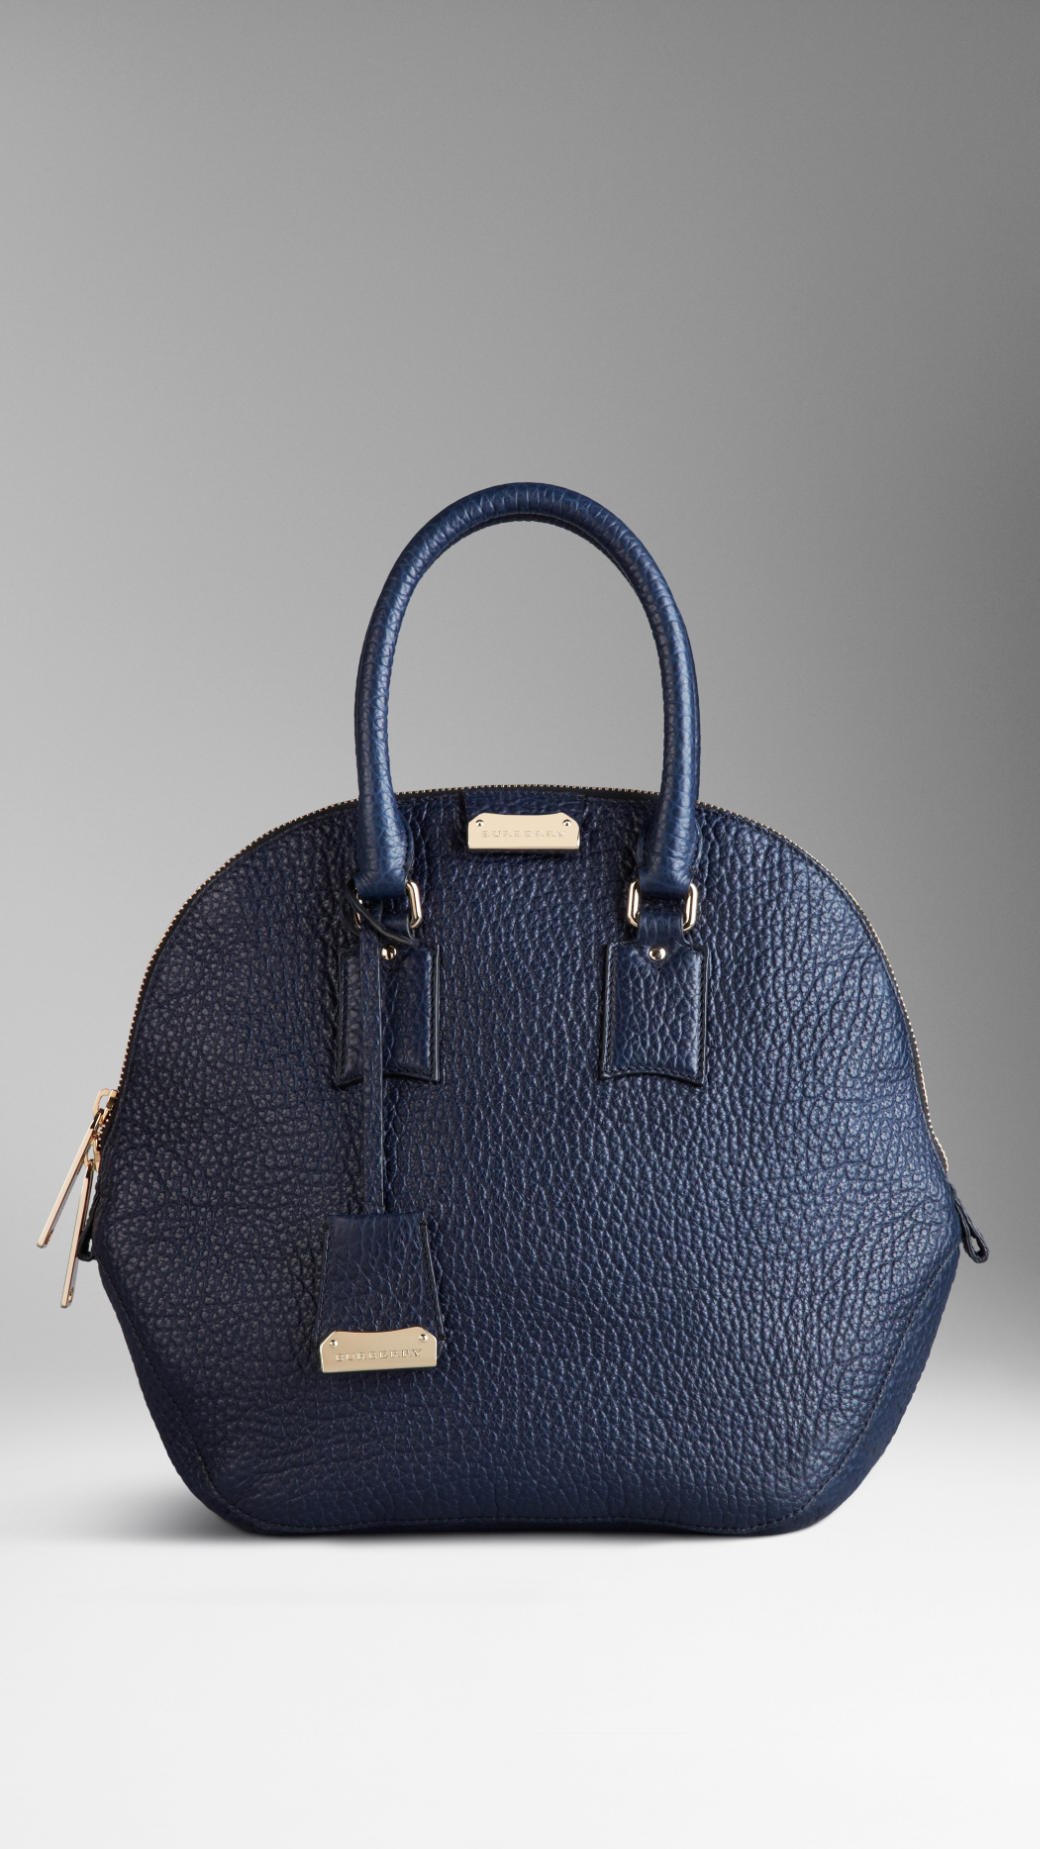 a6bbb3dfdbca Burberry The Medium Orchard in Heritage Grain Leather in Blue - Lyst